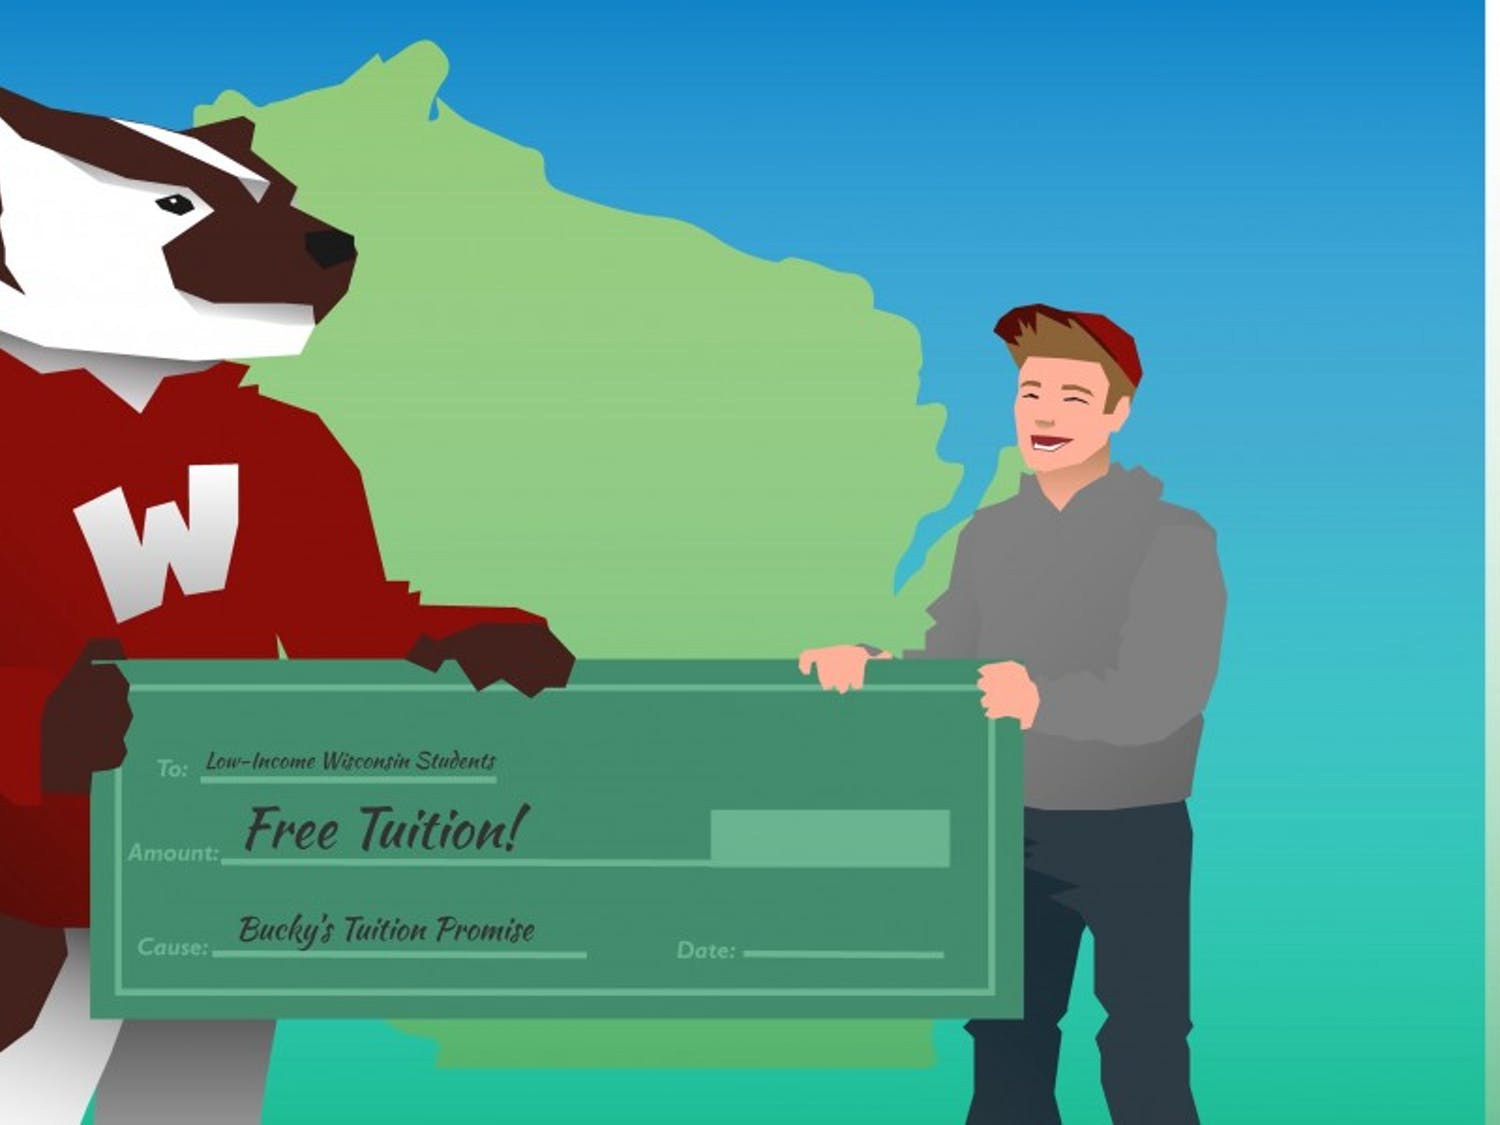 UW Madison's new Bucky's Tuition Promise will provide free tuition and fees to low income families starting this year.